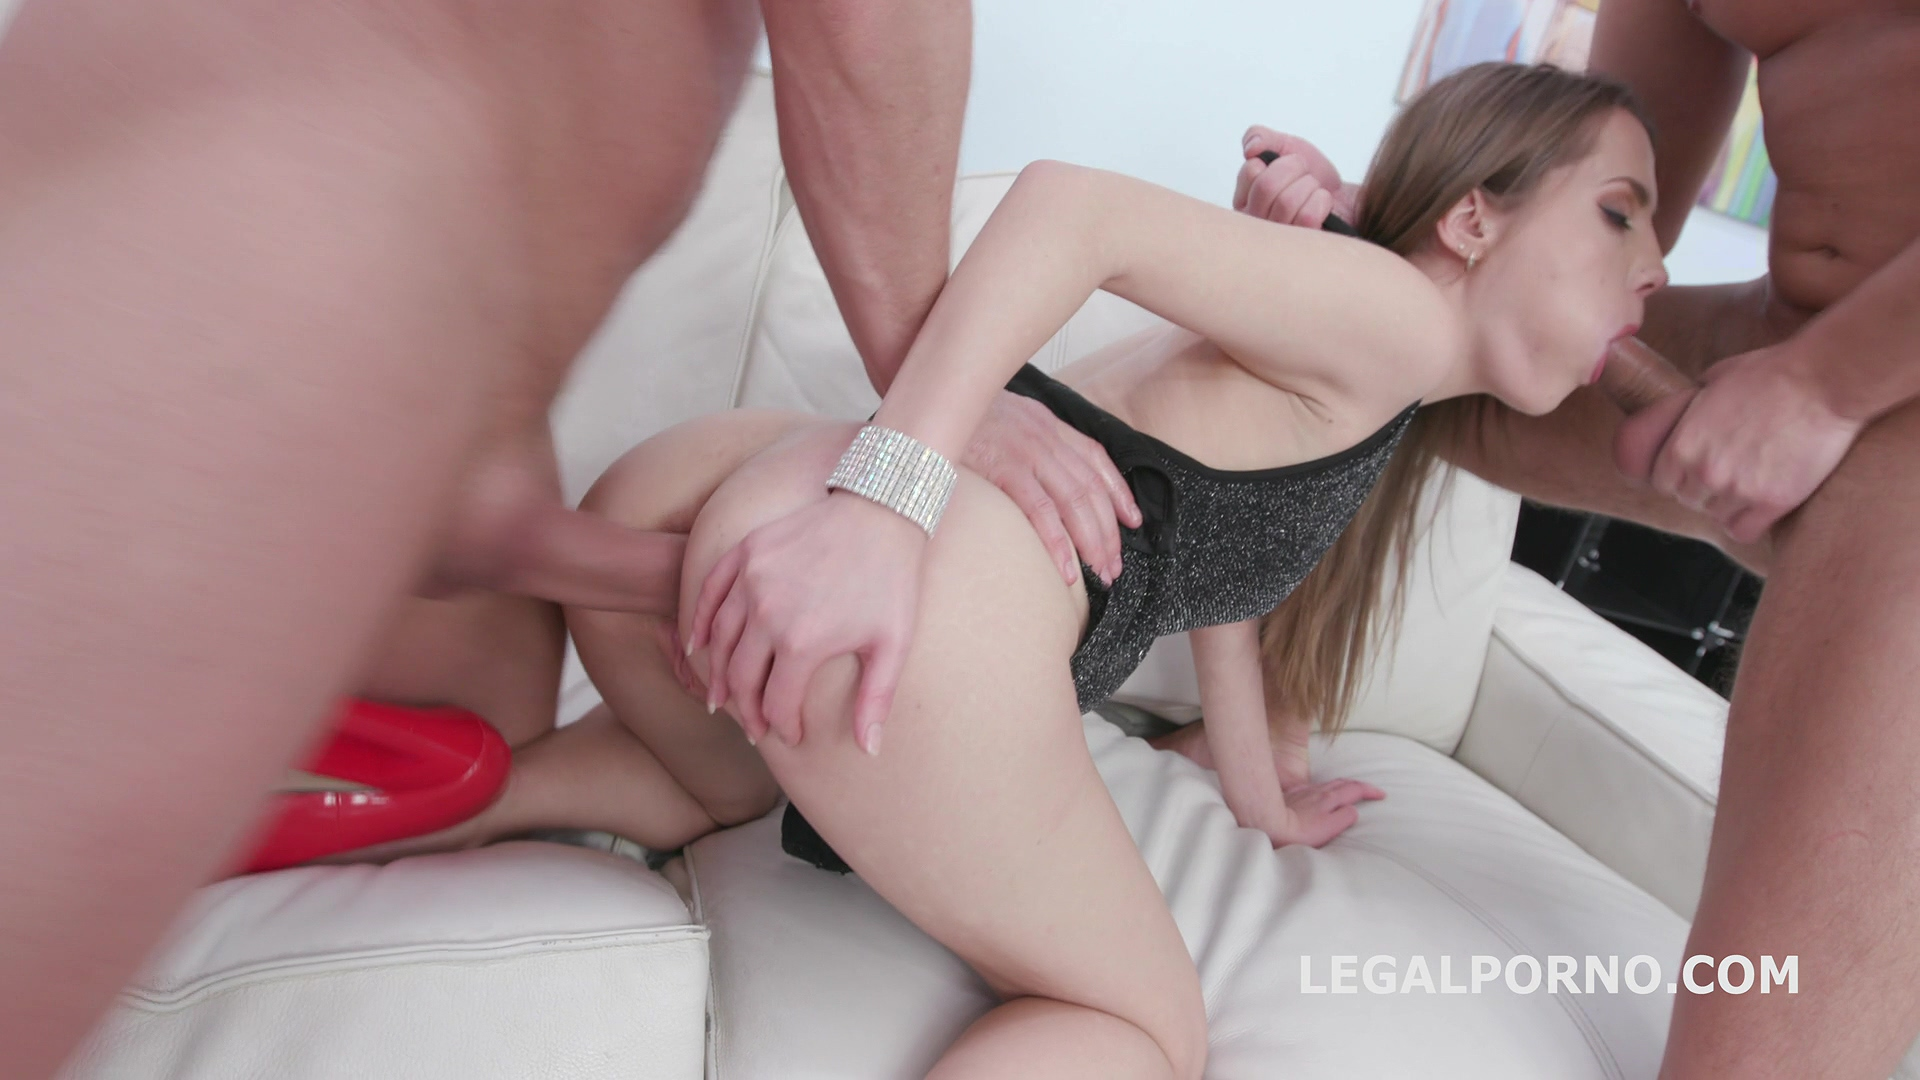 dap_destination_stasia_si_first_time_dap_with_balls_deep_anal_gapes_and_creampie_swallow_gio1393_fhd_mp4_20200317_112051_221.jpg